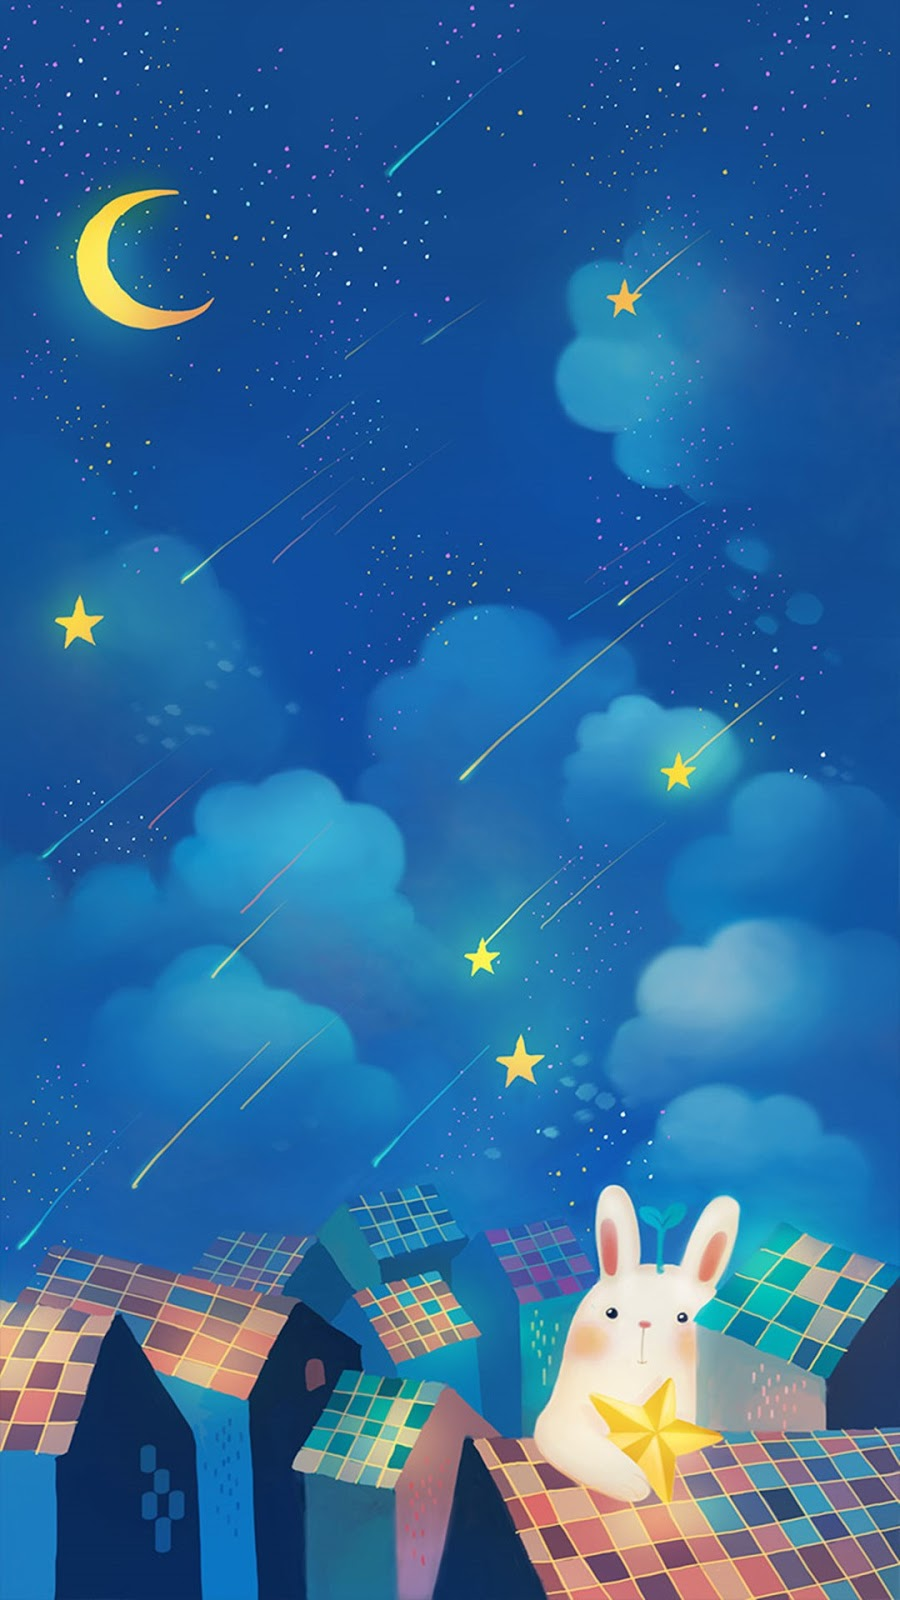 Cool Wallpaper Night Iphone 7 - Romantic-Night-Moon-Star-Clouds-Sky-Rabbit-House-Top-iphone-7-and-iphone-7-plus-hd-wallpaper  Perfect Image Reference-948045.jpg